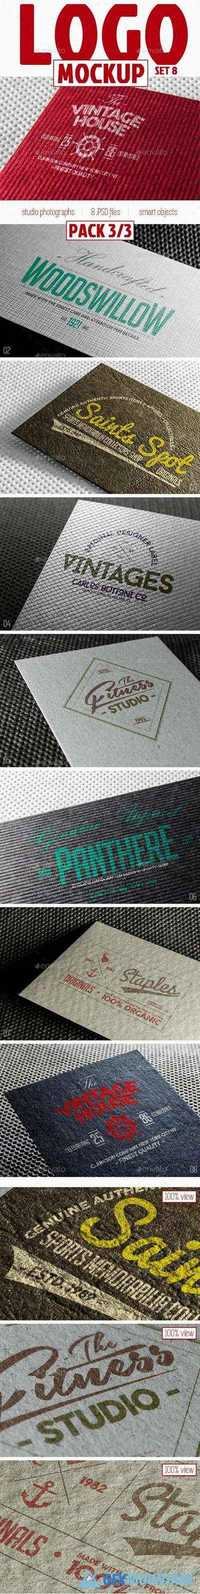 Complete Paper Logo Mock-Up